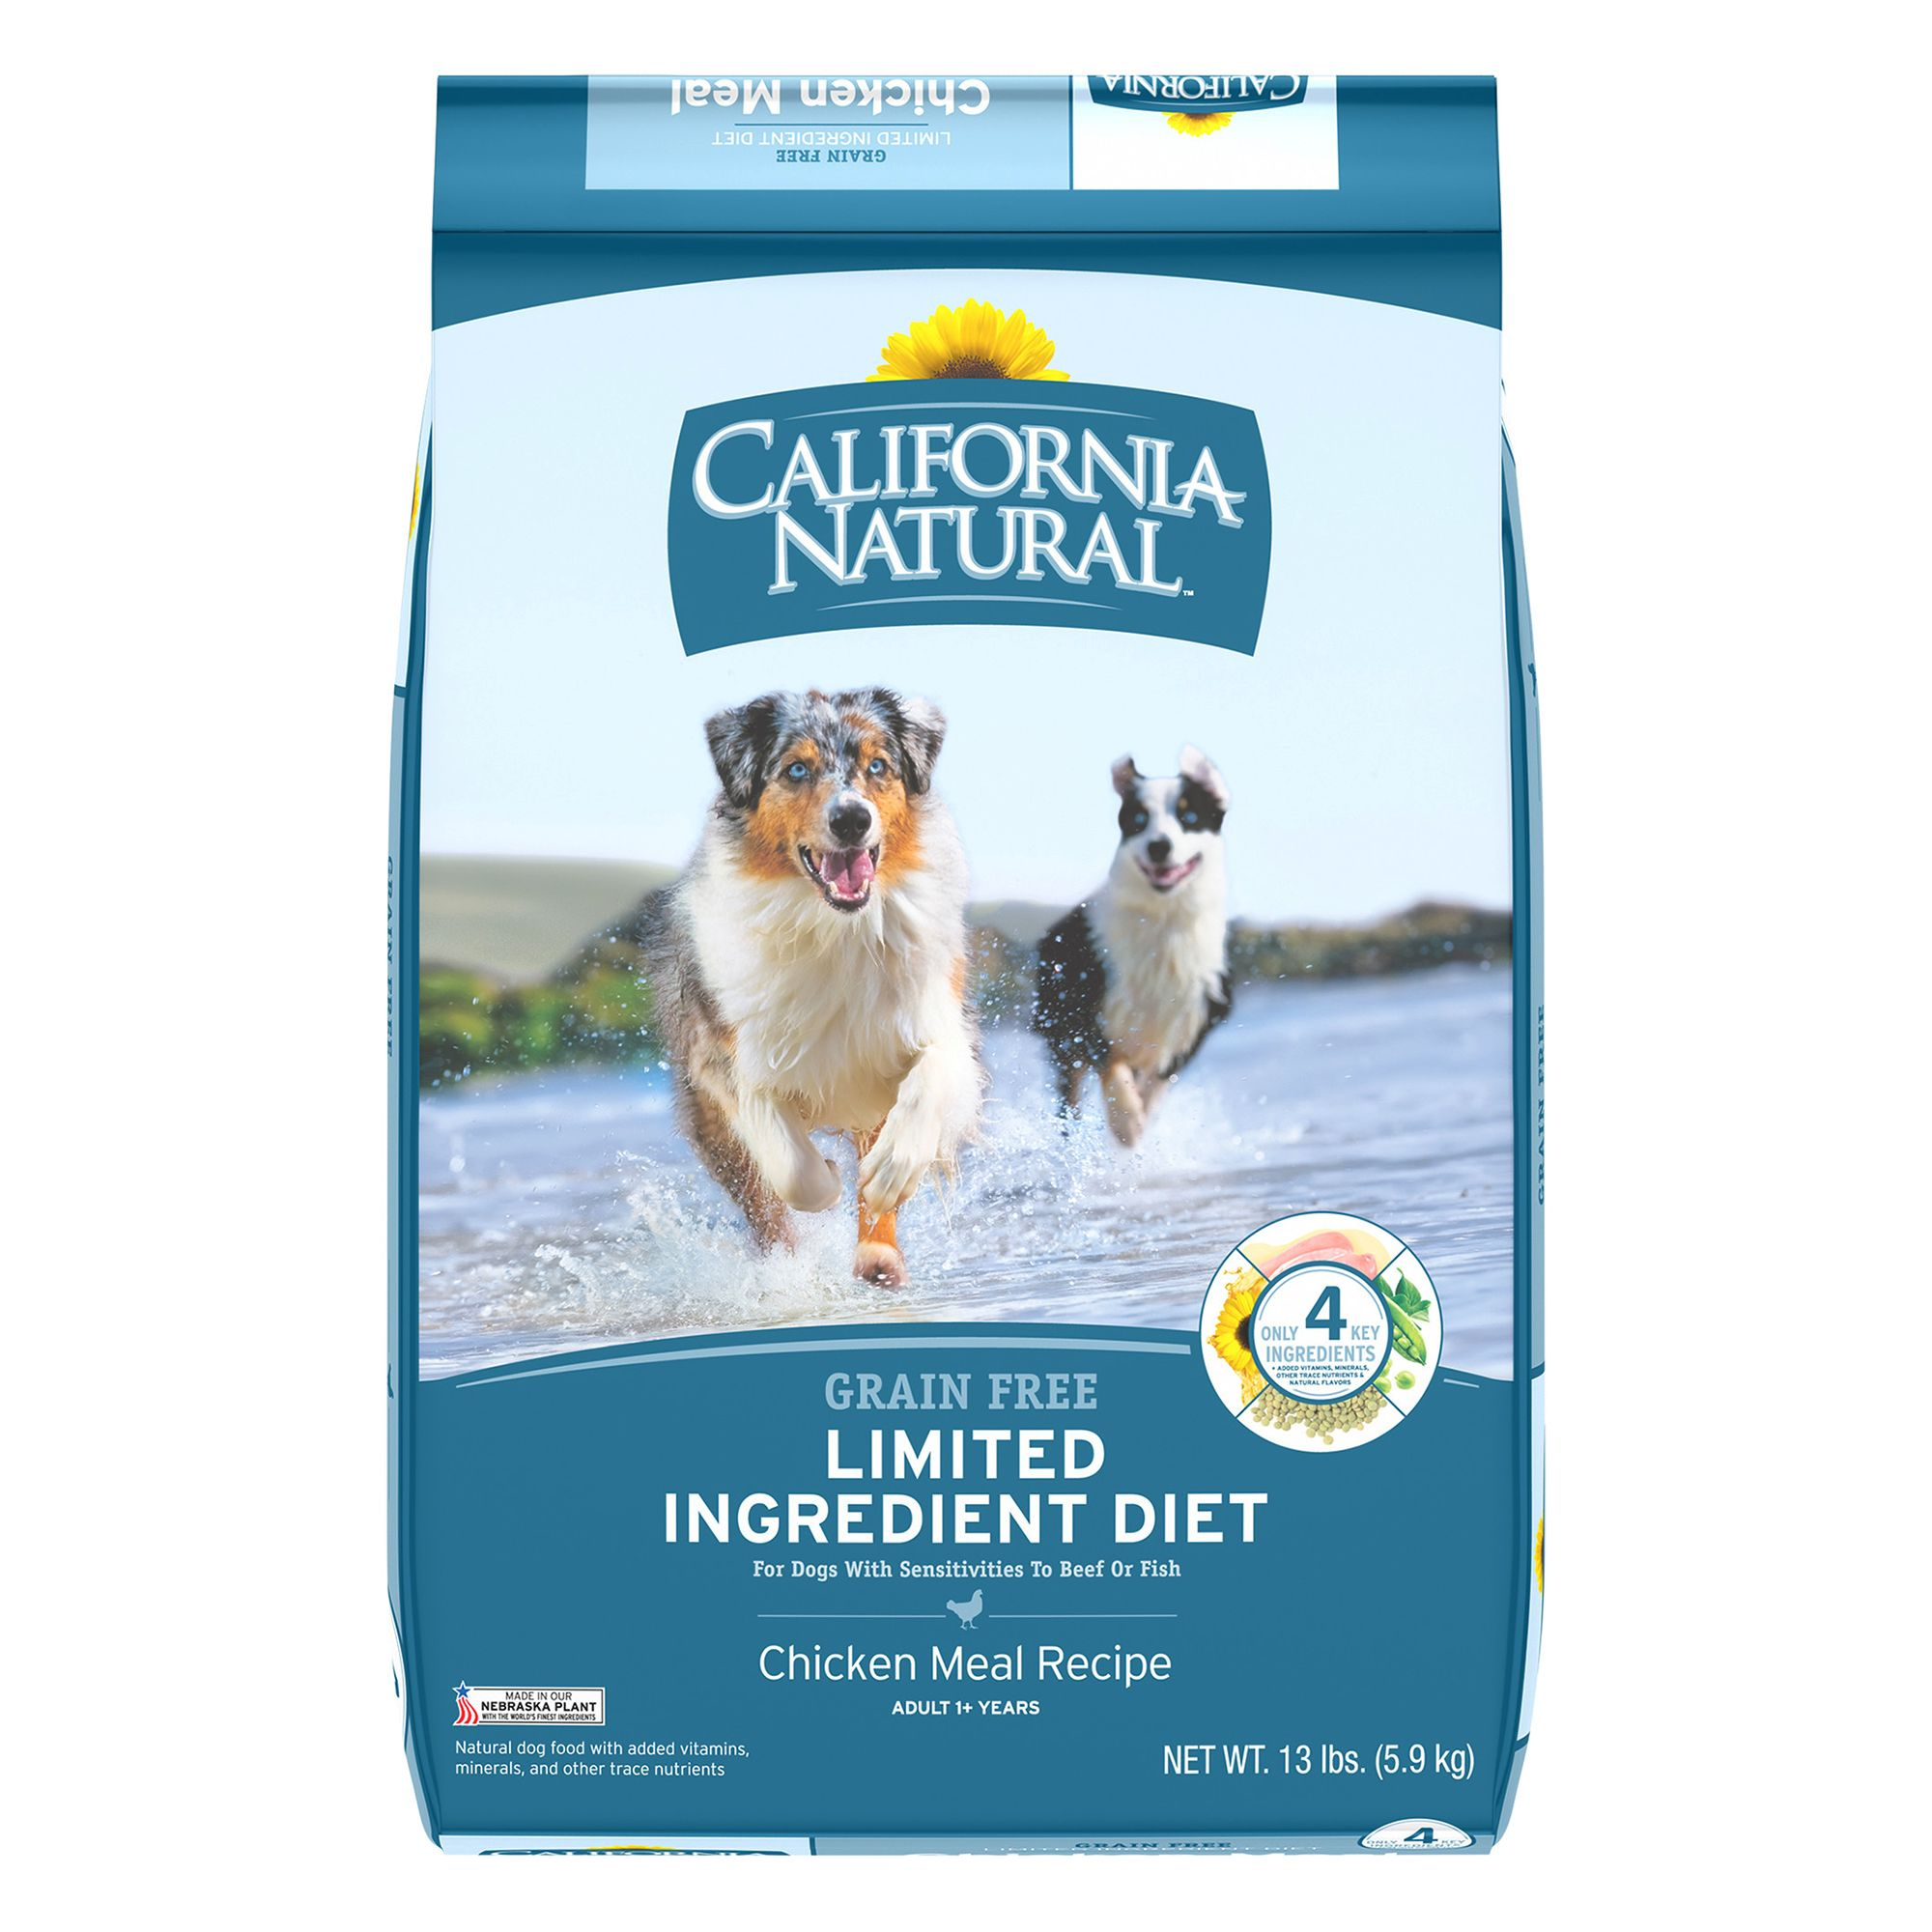 California Natural Limited Ingredient Diet Dog Food Natural Grain Free Chicken Meal Size 13 Lb